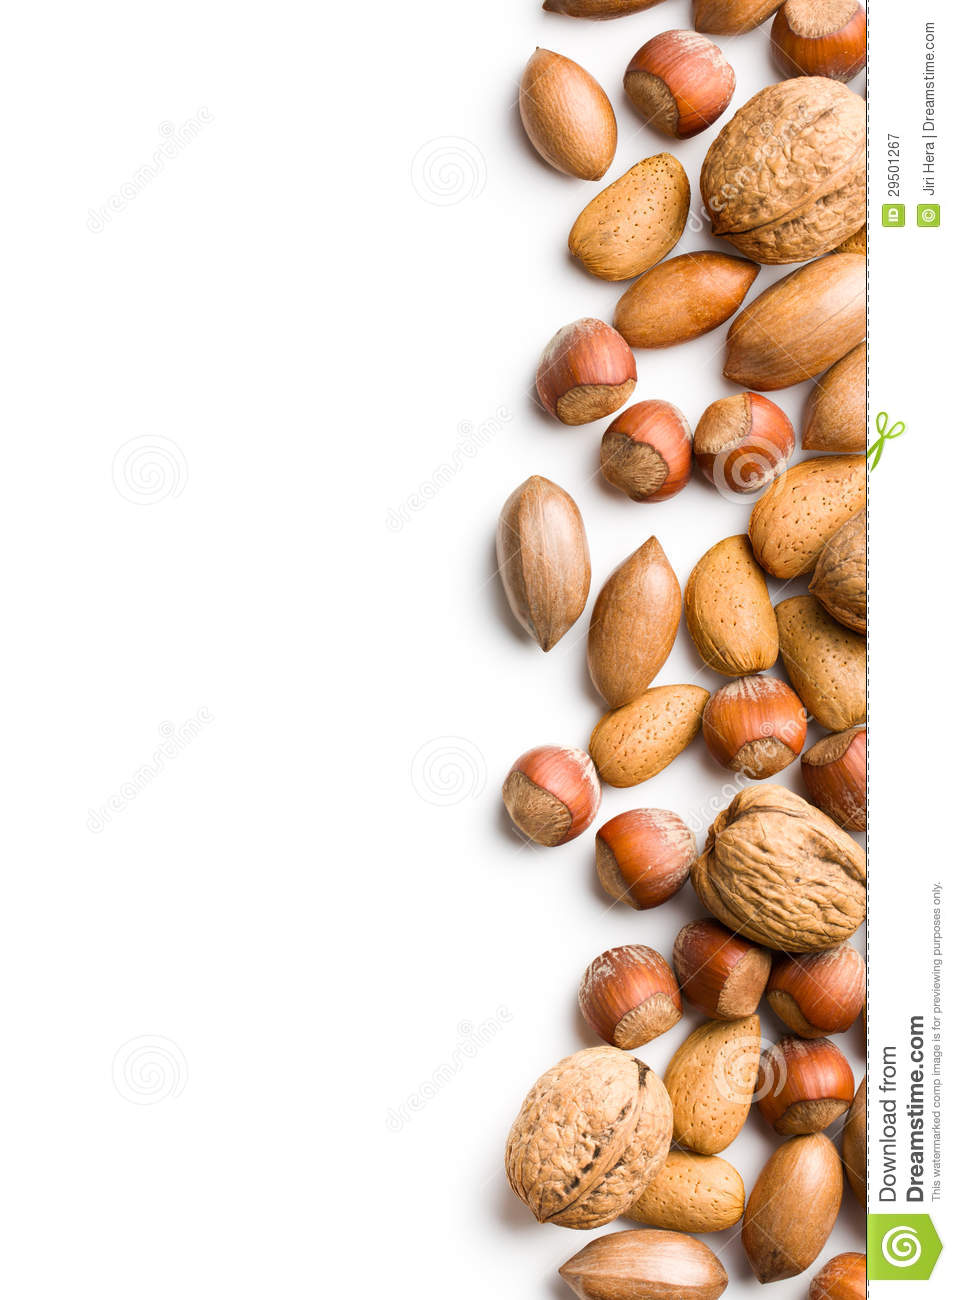 Free Clipart Nuts